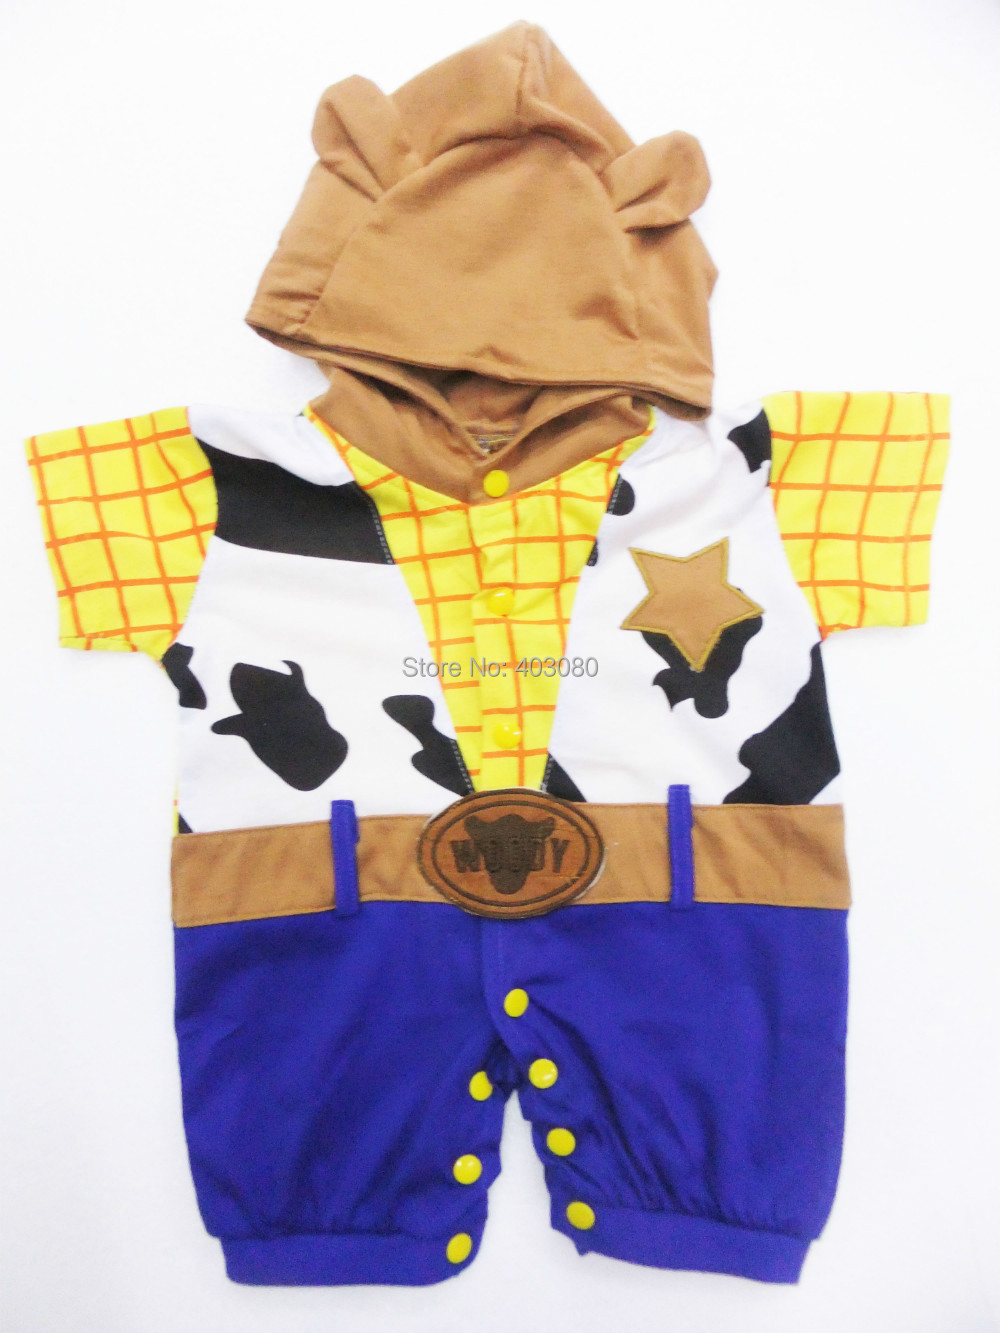 retail &wholesale yellow short sleeve cotton clothing Baby crawl clothing kid clothes rompers west cowboy plays clothing SZ-S-XL